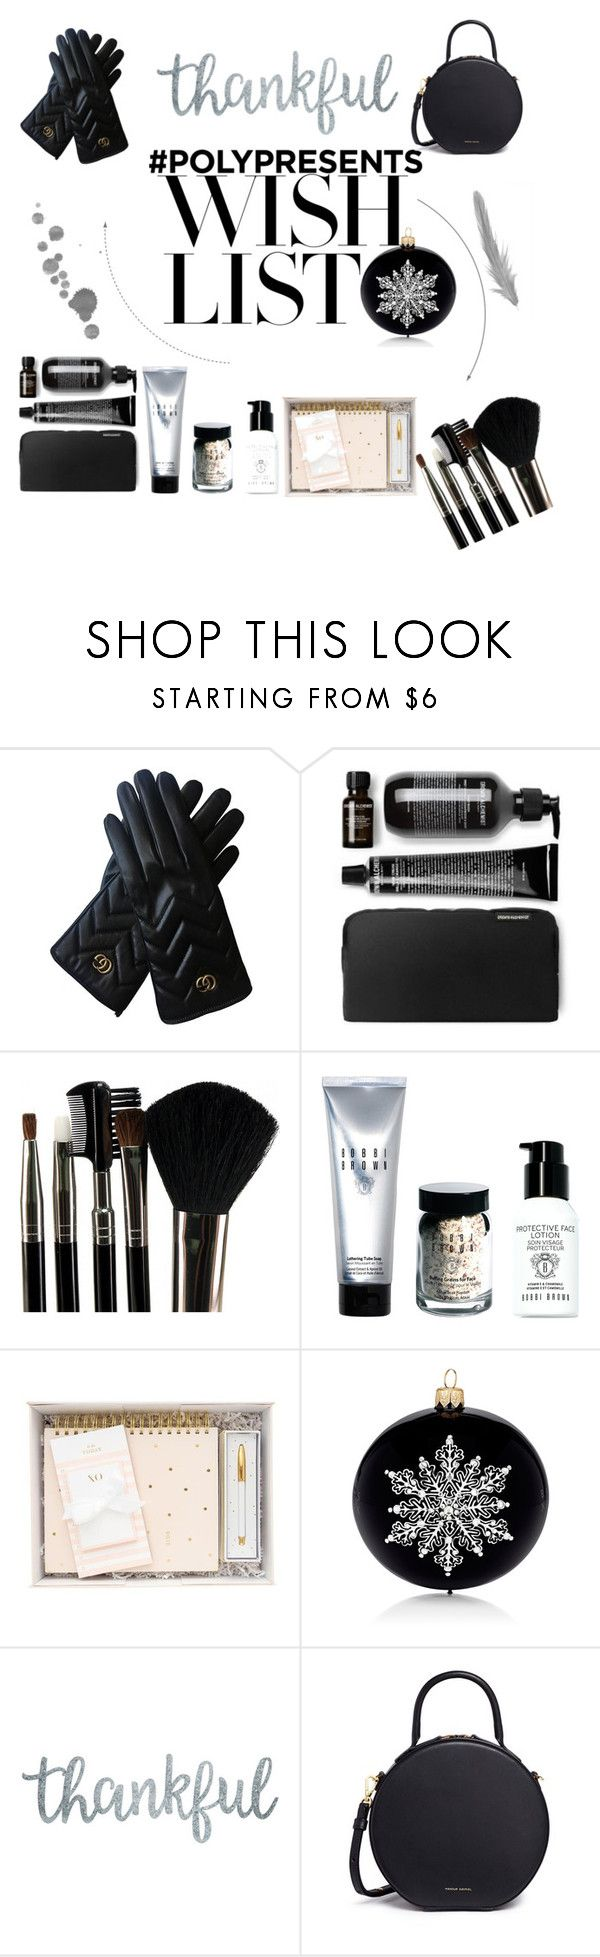 """""""#PolyPresents: Wish List"""" by deadbeat-horn on Polyvore featuring Gucci, Glamour Status, Bobbi Brown Cosmetics, Barneys New York, Mansur Gavriel, contestentry and polyPresents"""